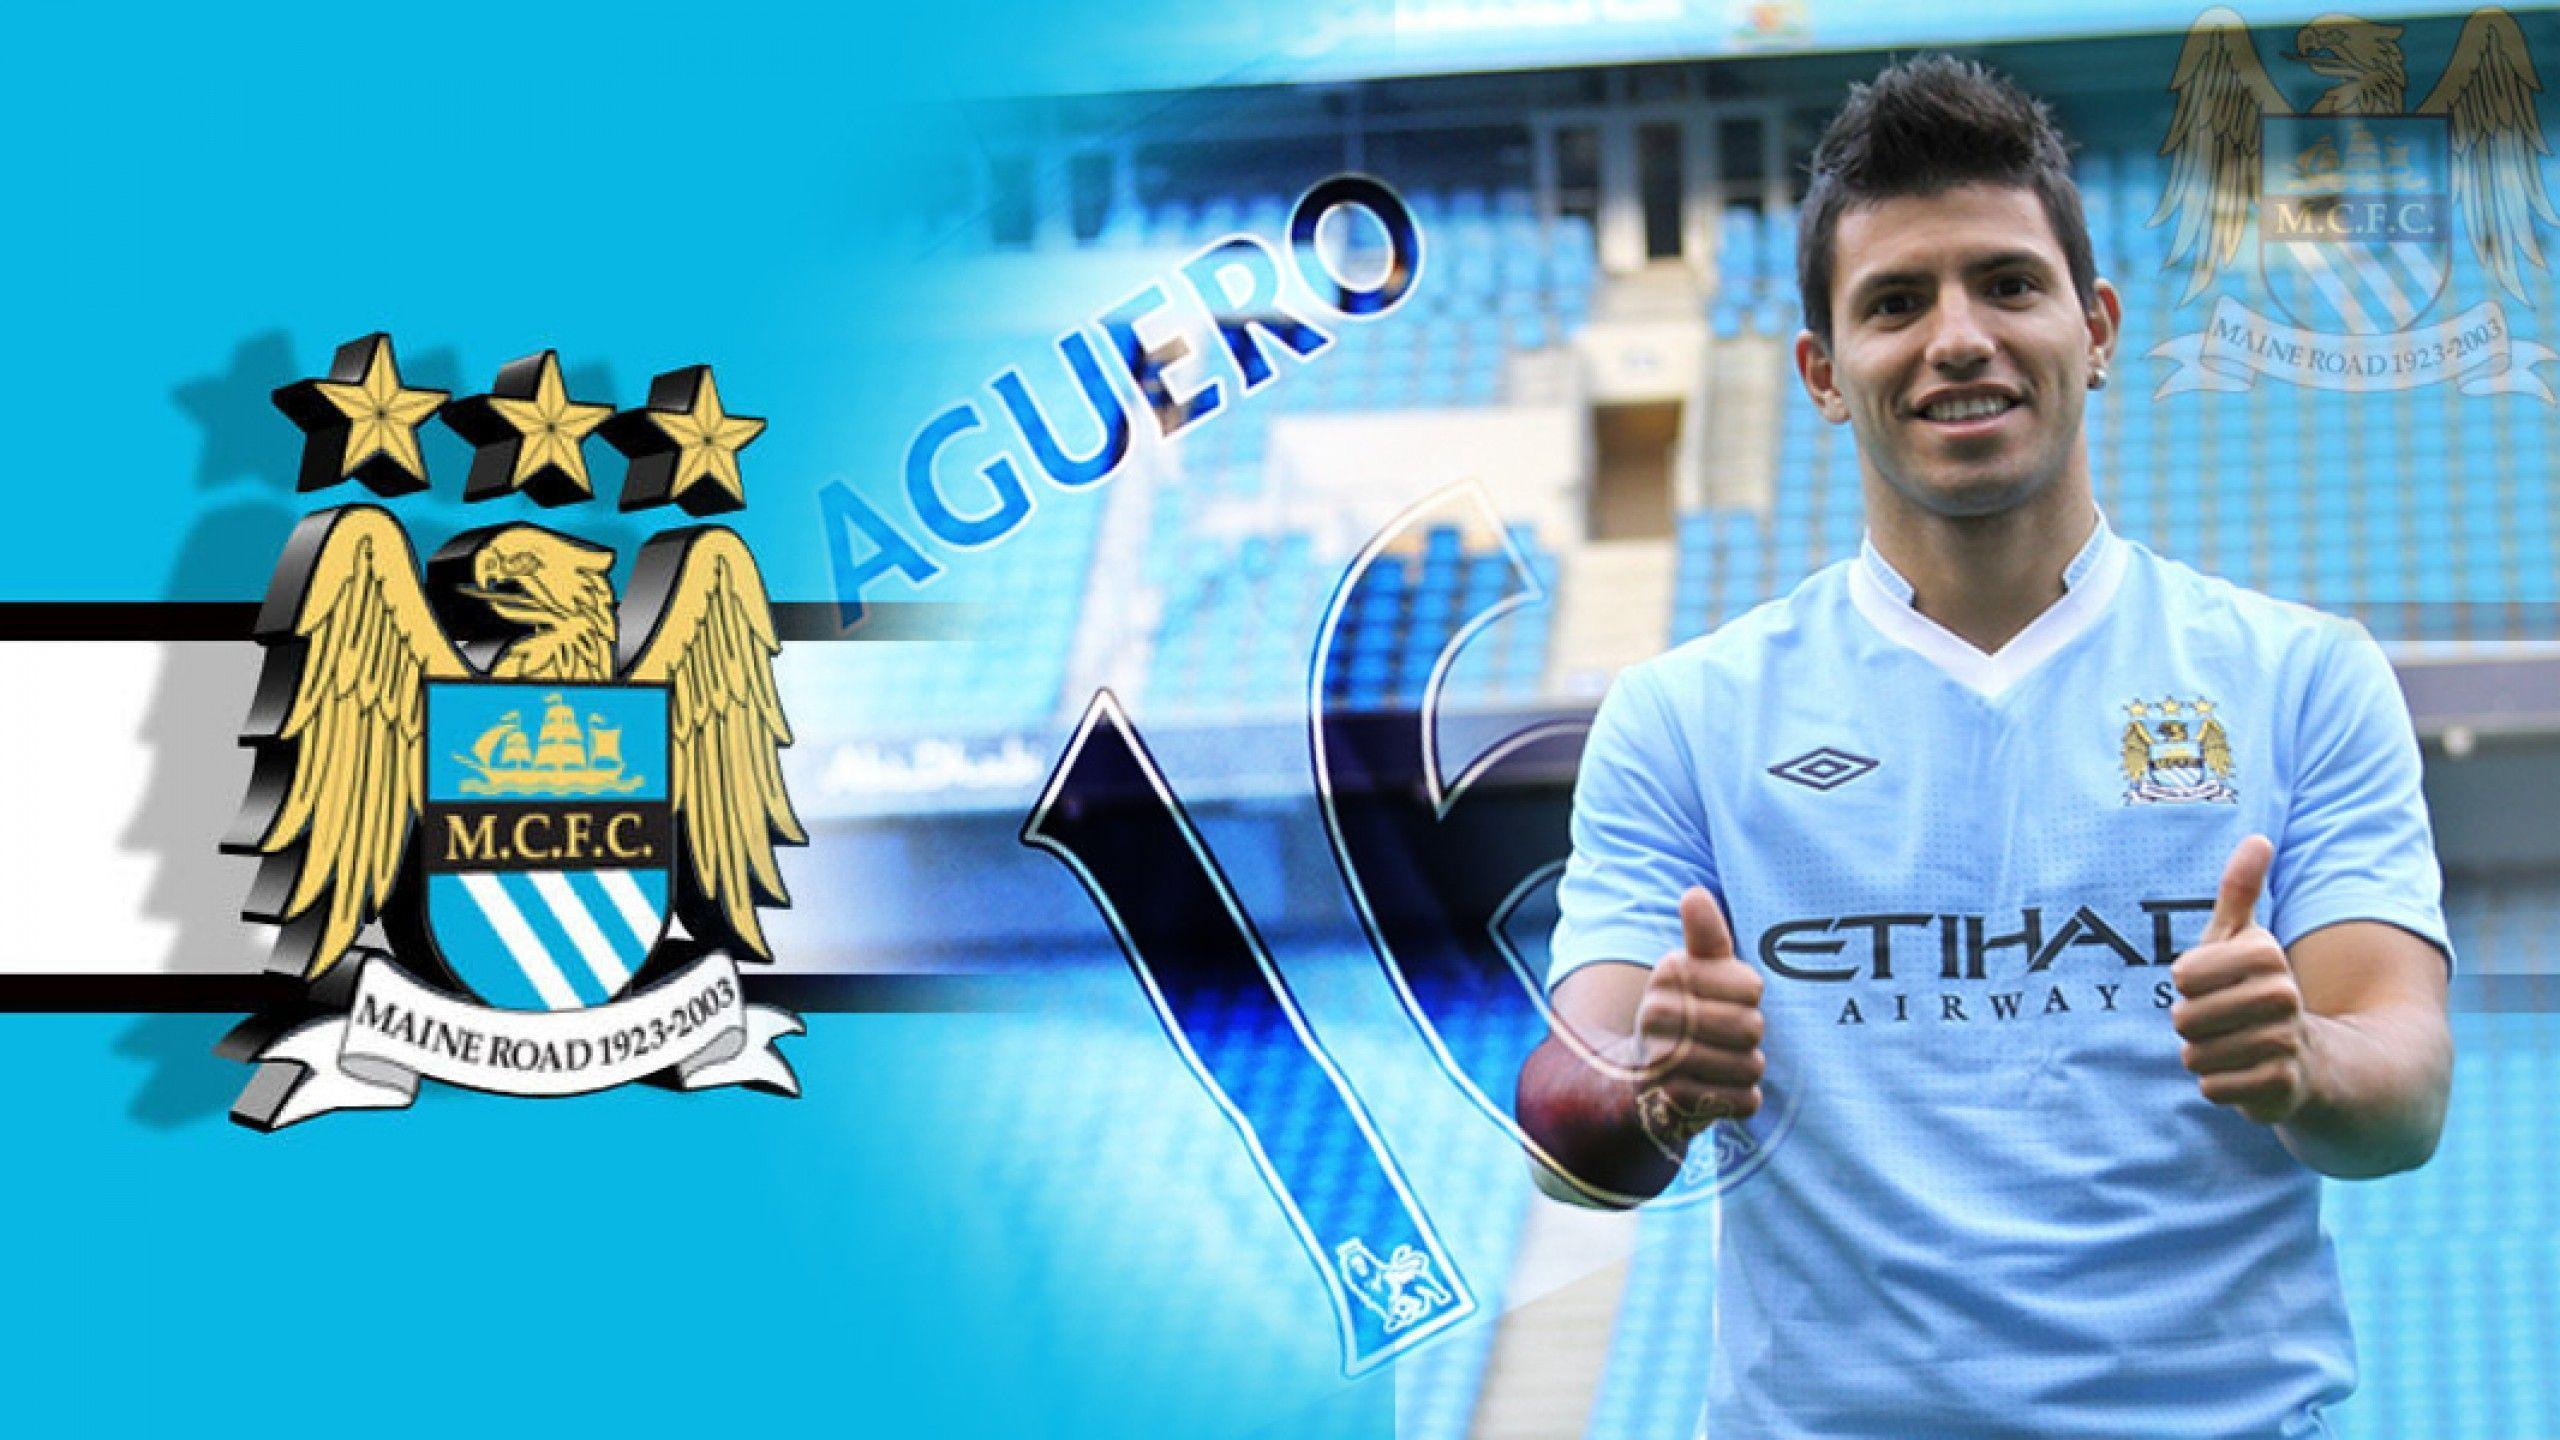 Sergio Agüero Wallpapers